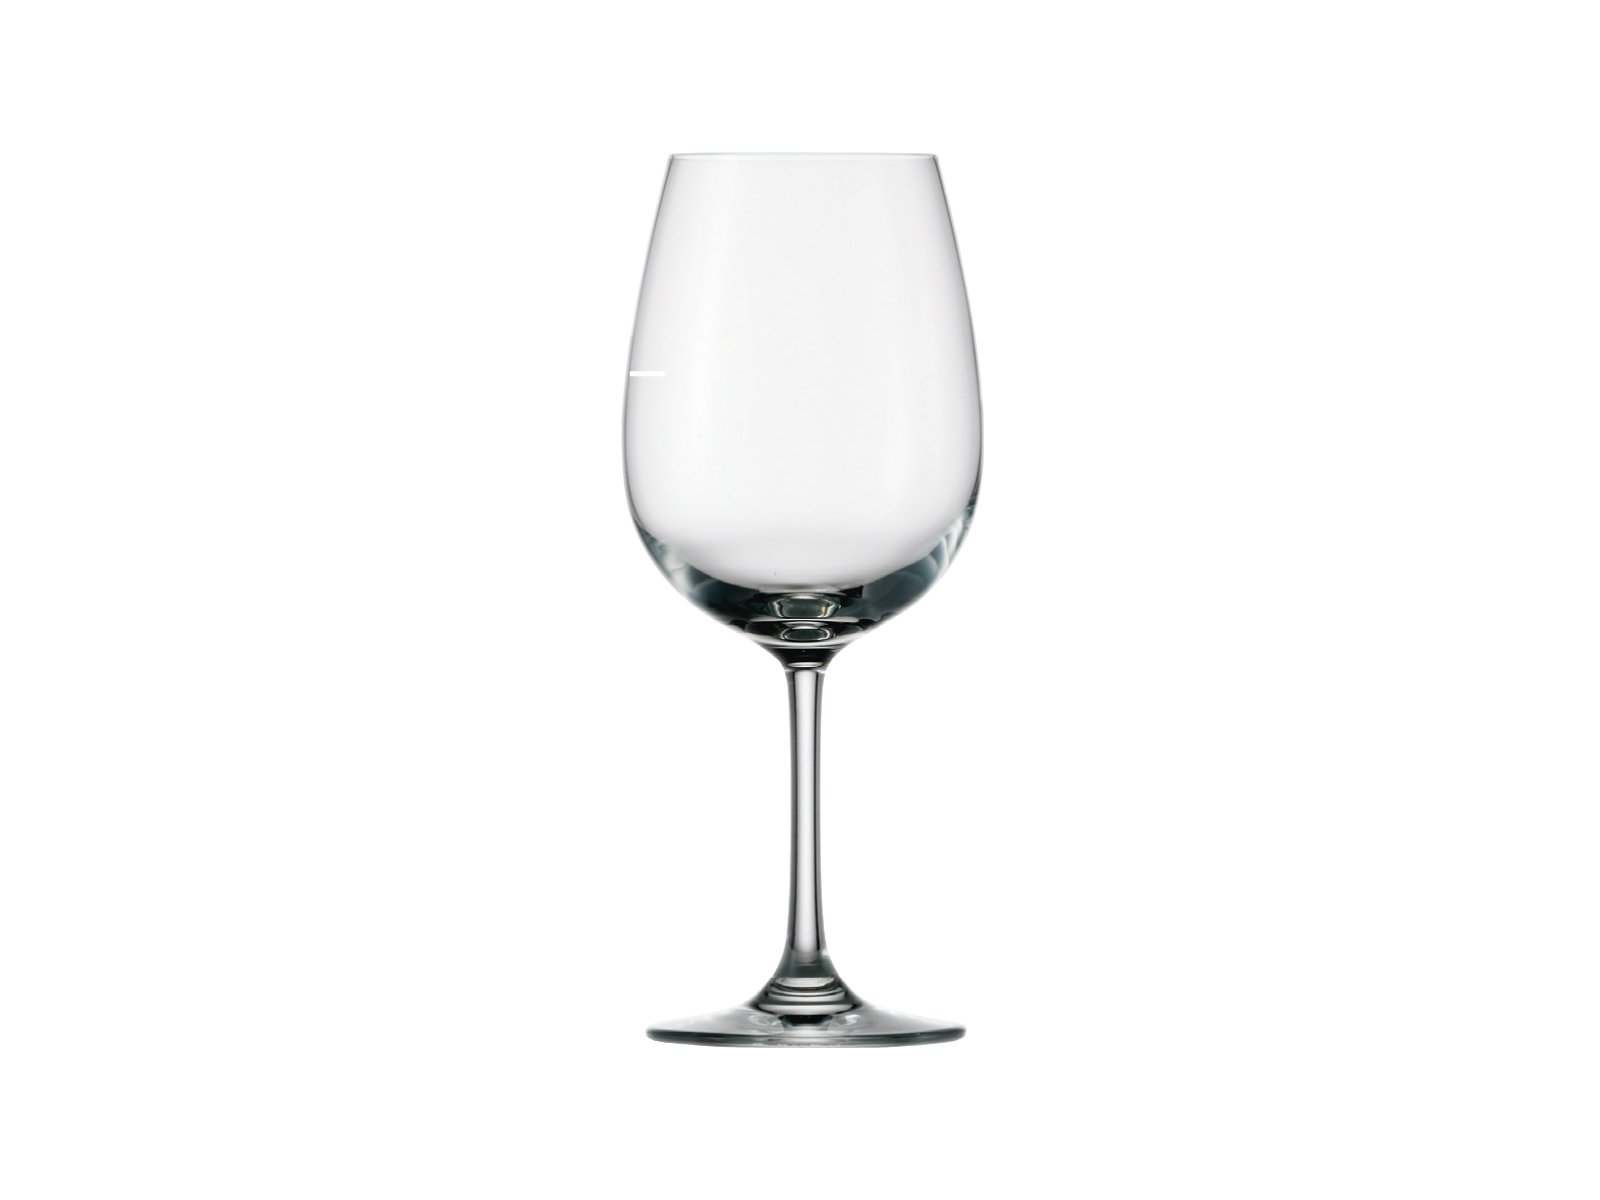 Picture of: Glas Weinland Rodvin 45 Cl M Streg 14 Cl H W Larsen A S